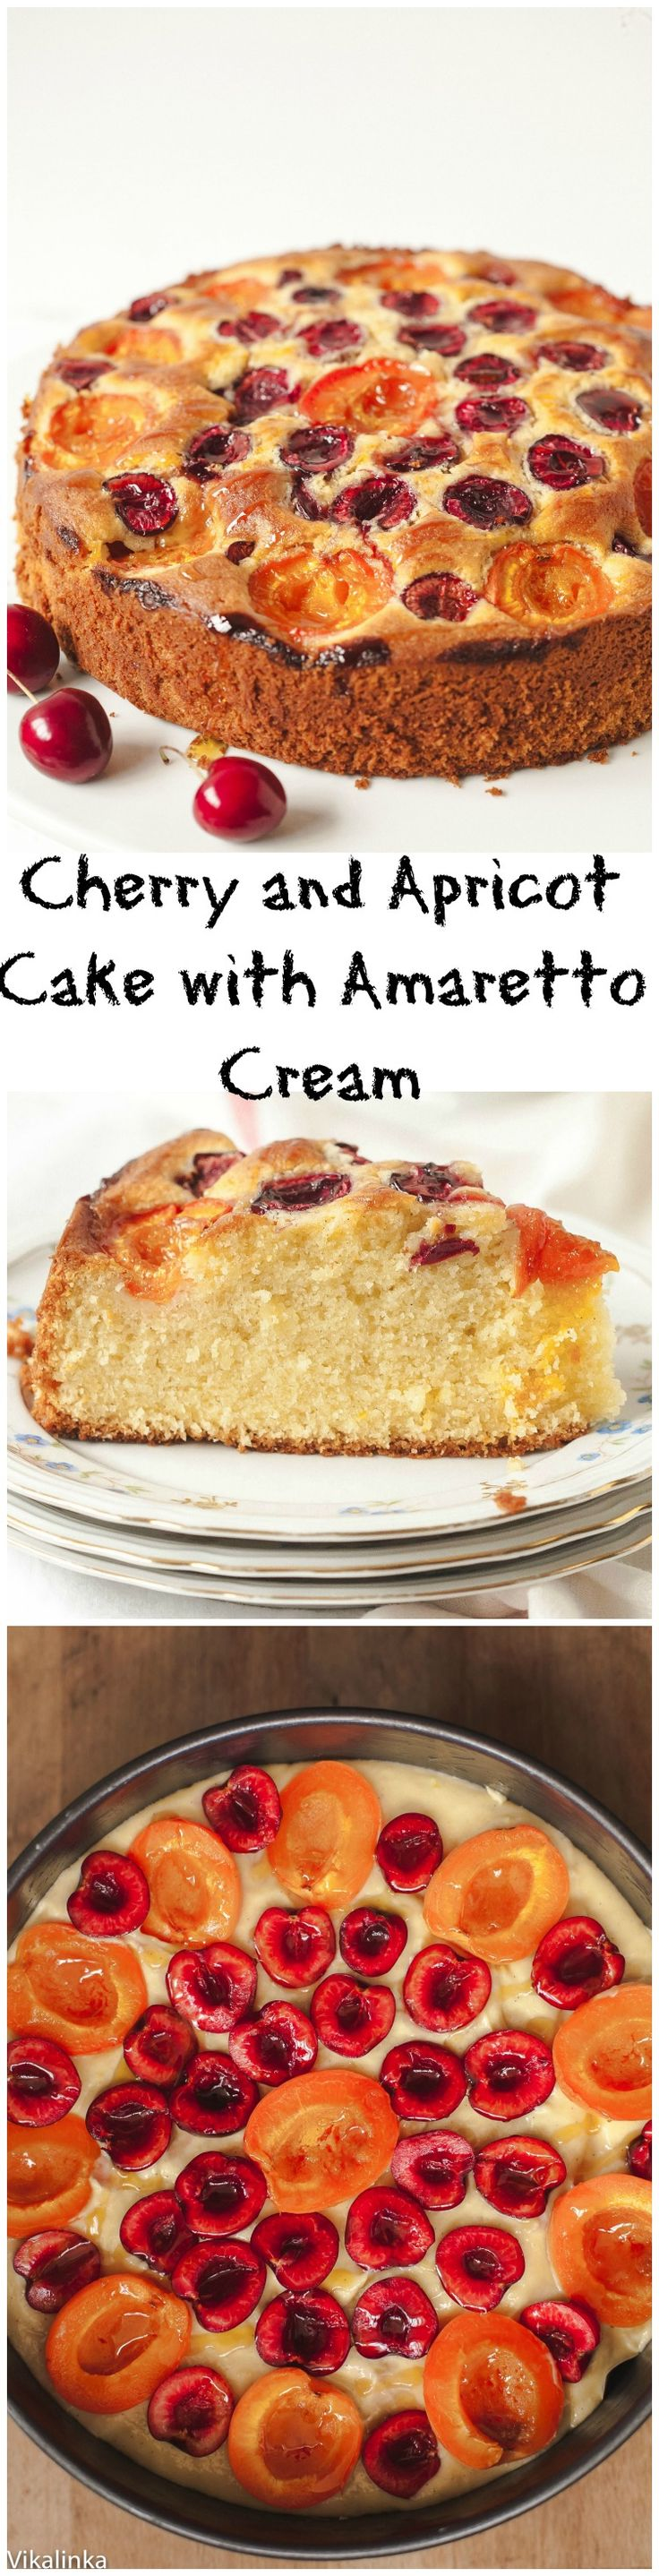 This cake is light, buttery rich and pillowy soft and the flavour, which comes from ground almonds, fresh lemon zest and pure vanilla, is just delightful. Throw a handful of cherries and apricots on top, drizzle with honey and you've got yourself a jewel studded beauty!